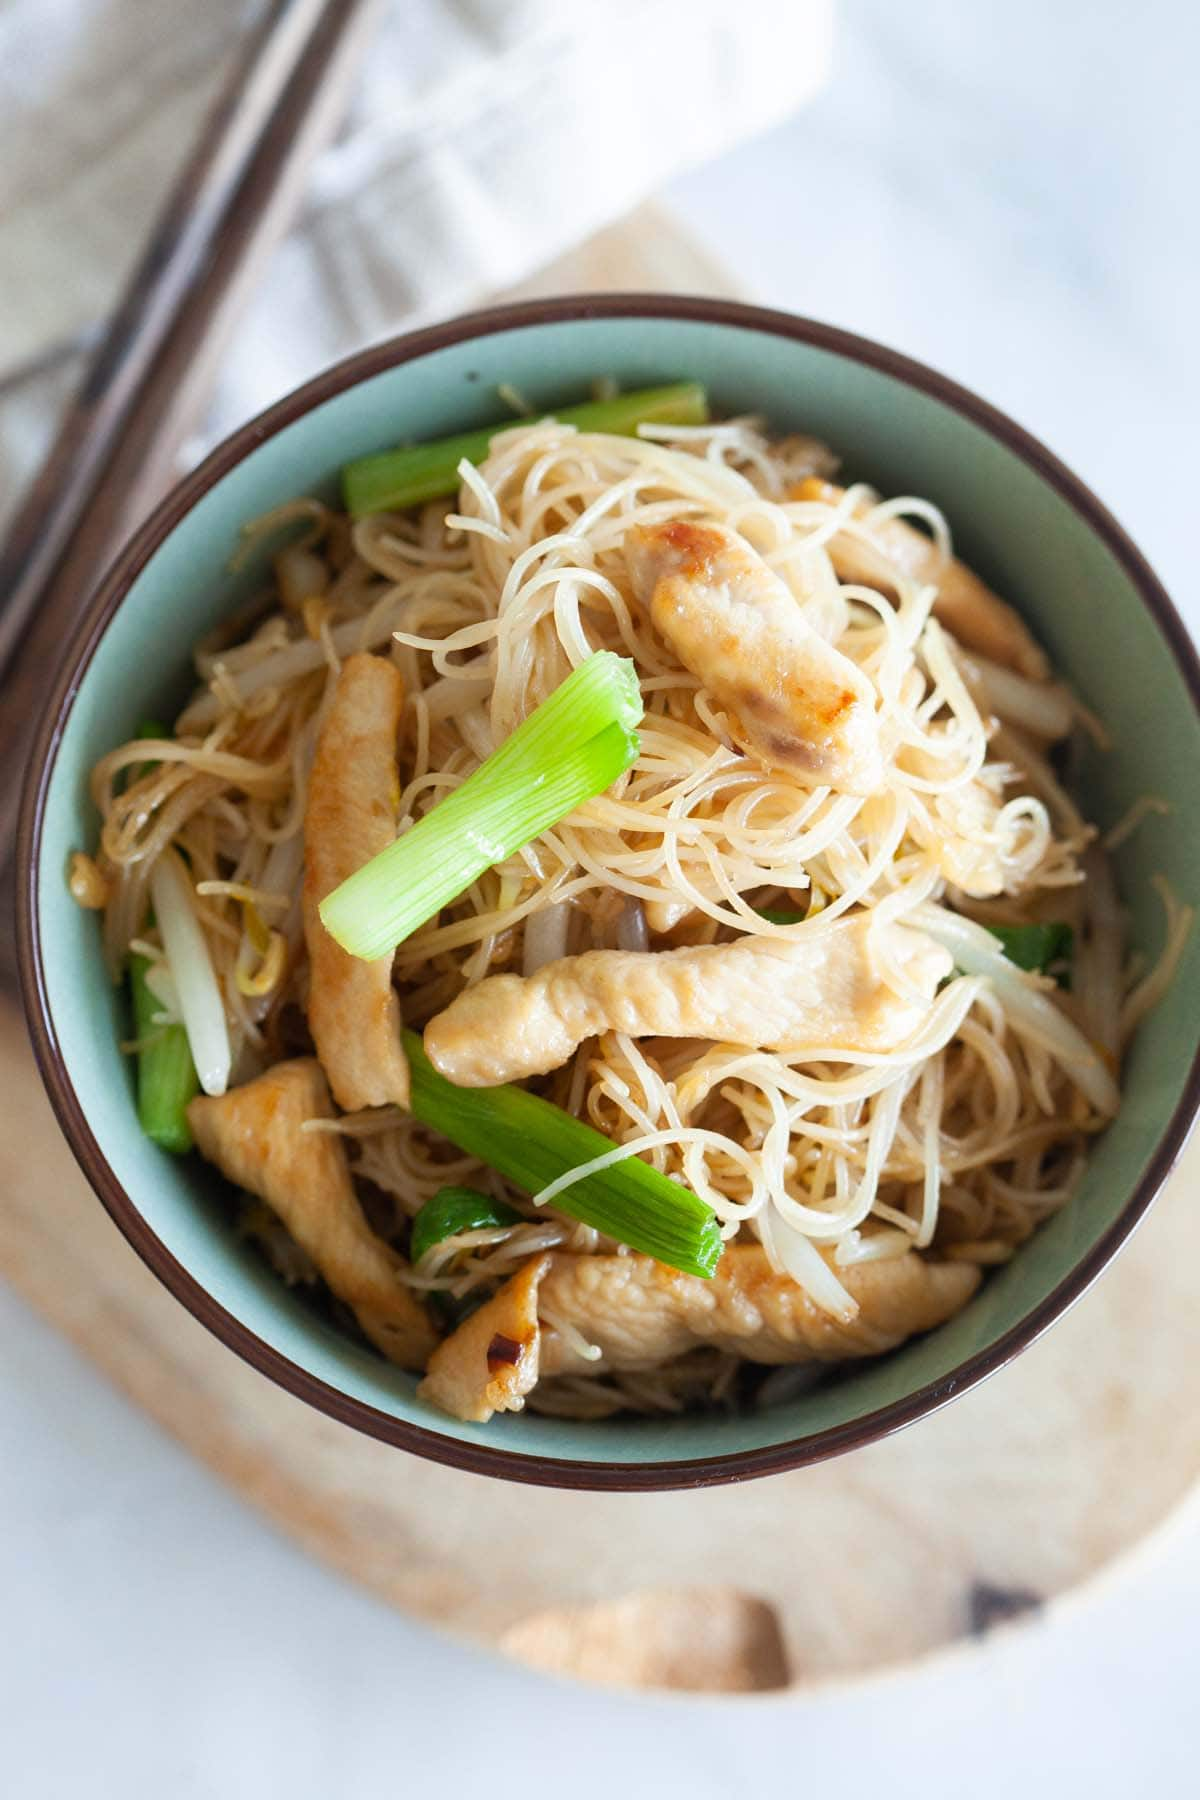 Rice noodles with chicken in a bowl.